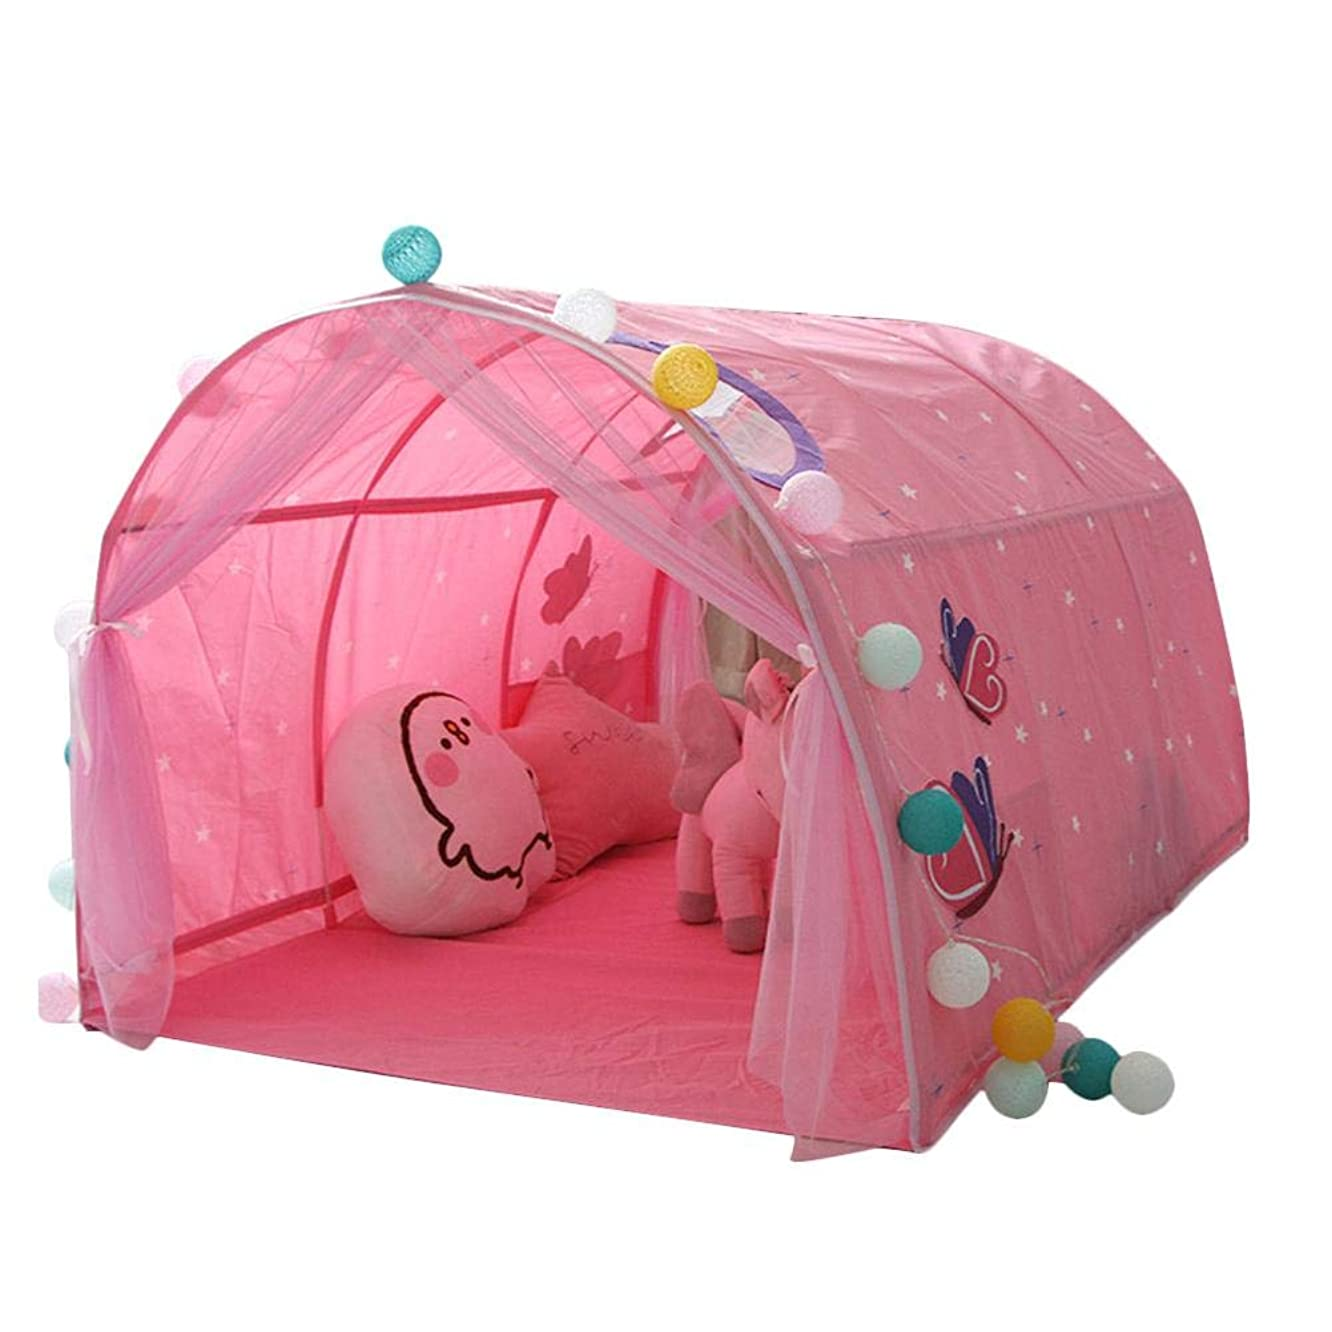 jannyshop Children Play Tent Game House Baby Home Tent Safe House Tunnel Tent for Baby